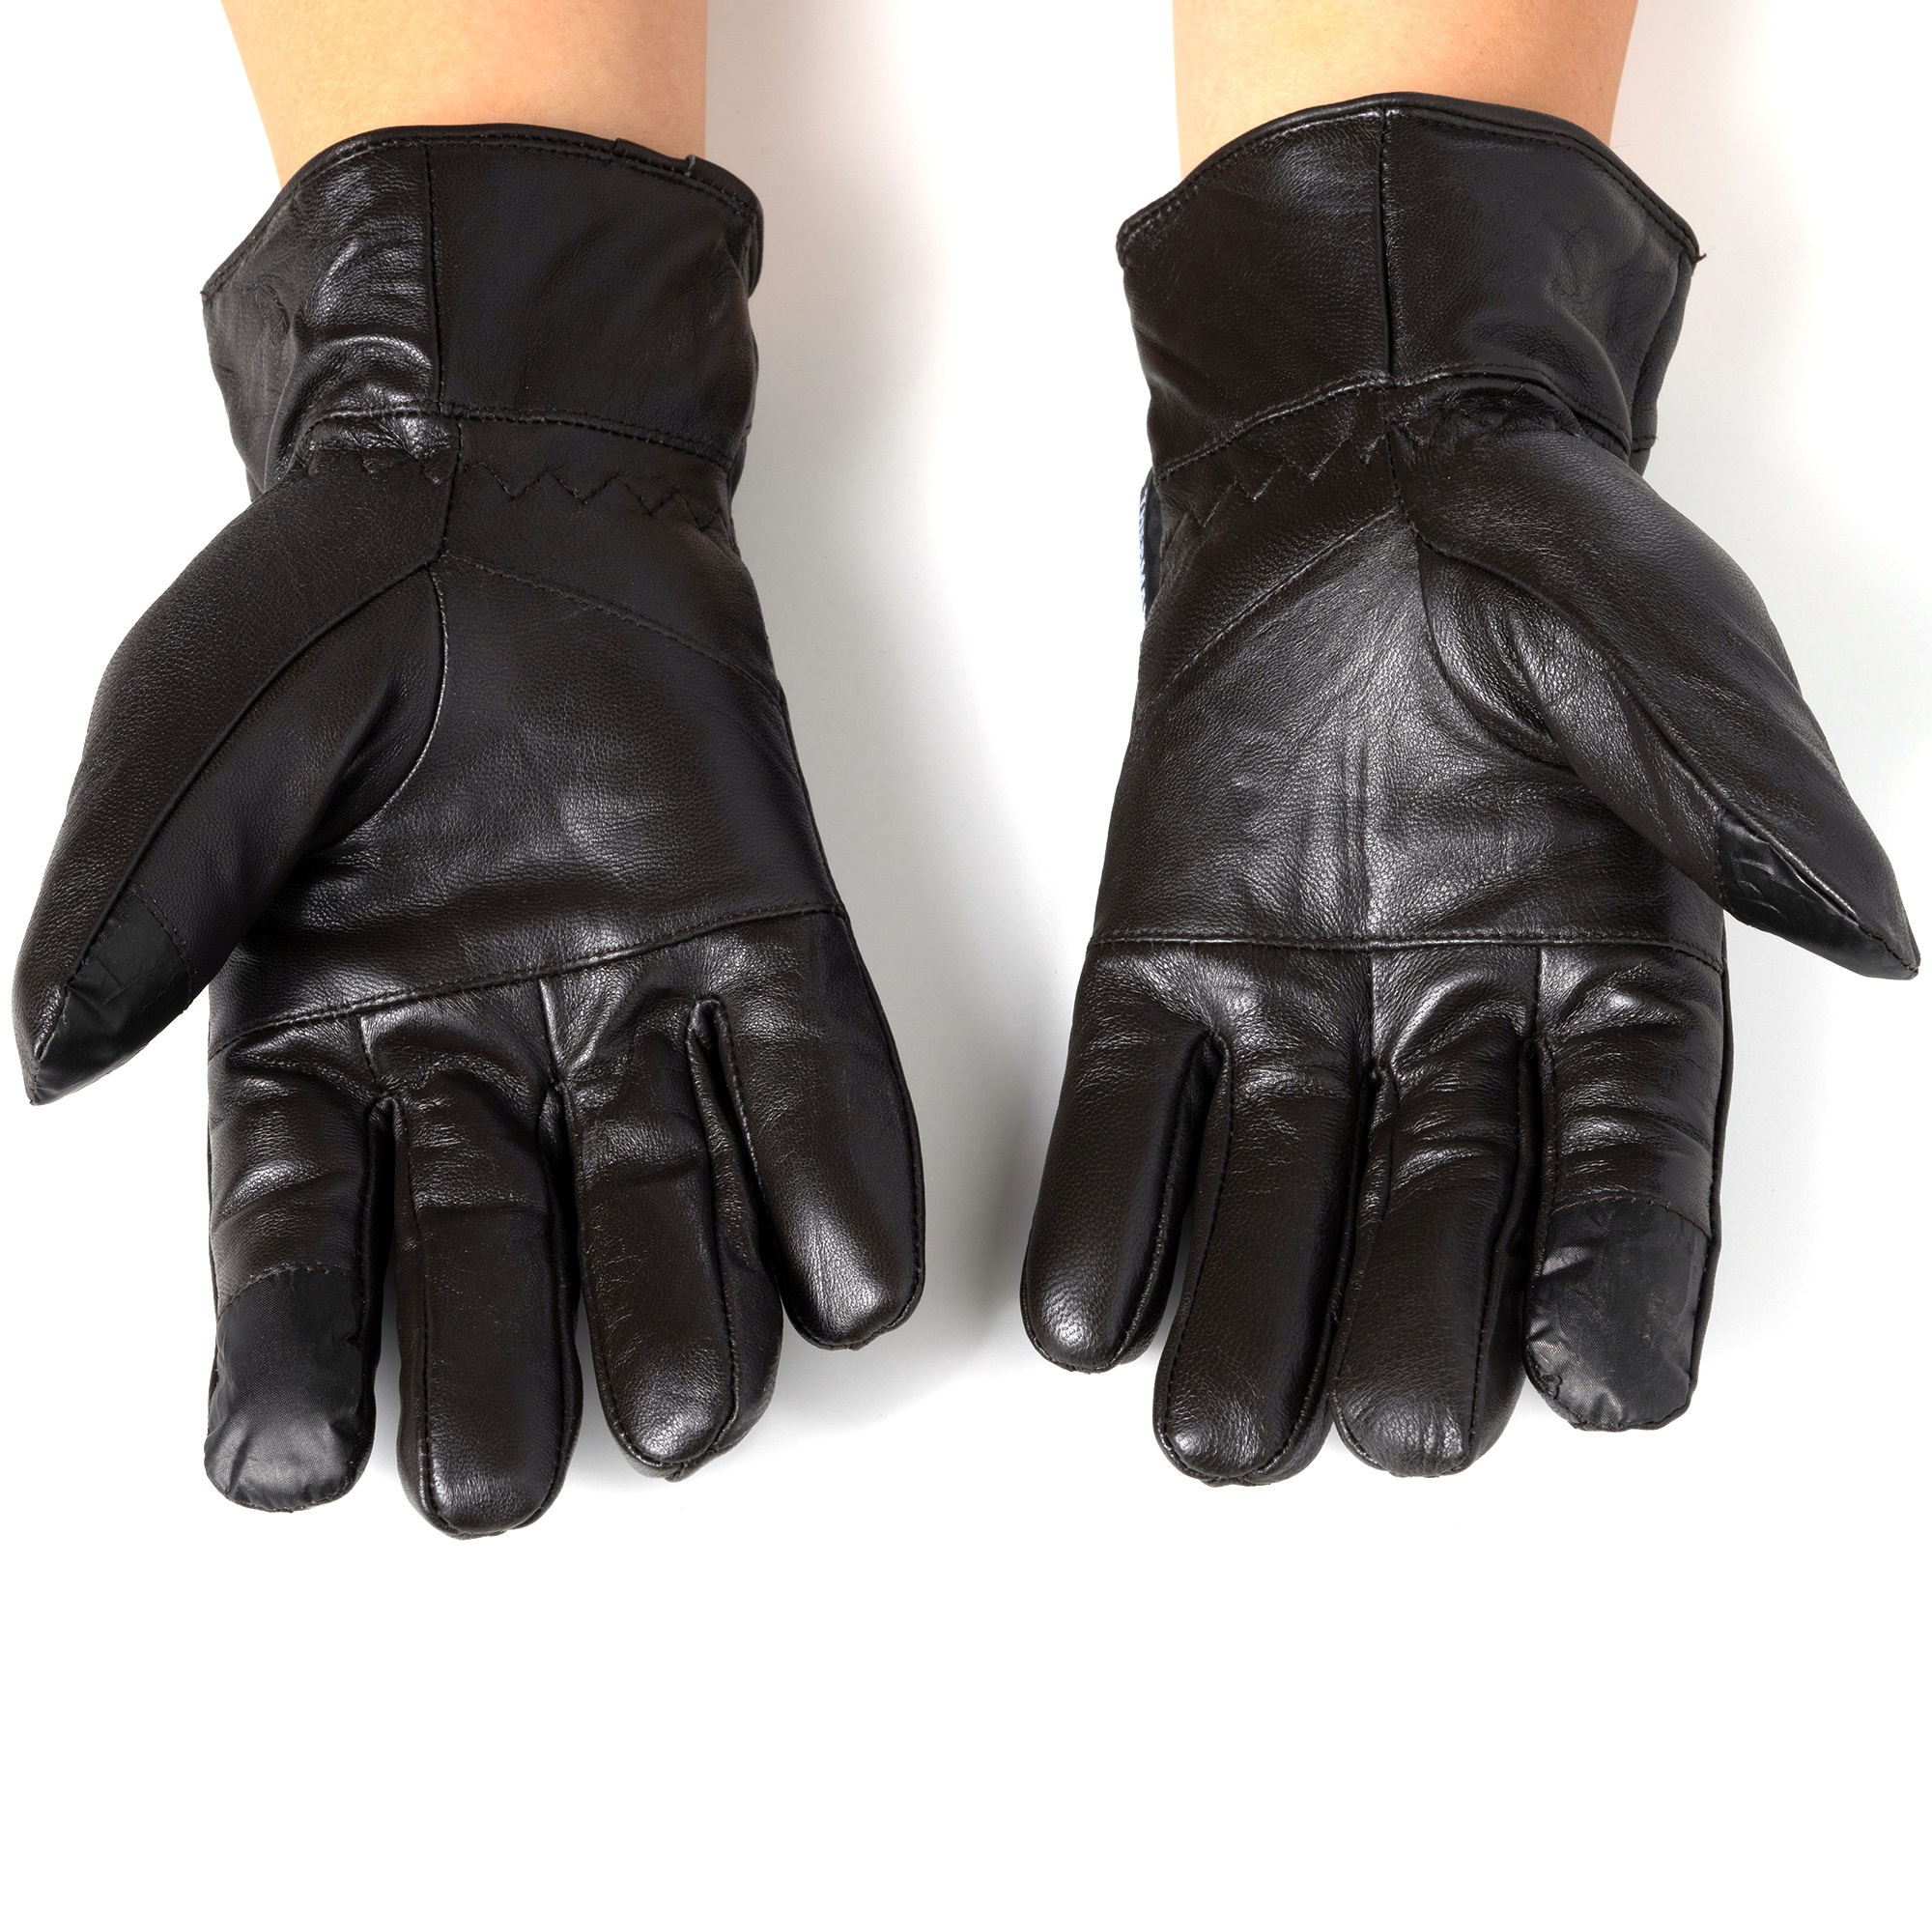 Alpine-Swiss-Mens-Touch-Screen-Gloves-Leather-Thermal-Lined-Phone-Texting-Gloves thumbnail 22